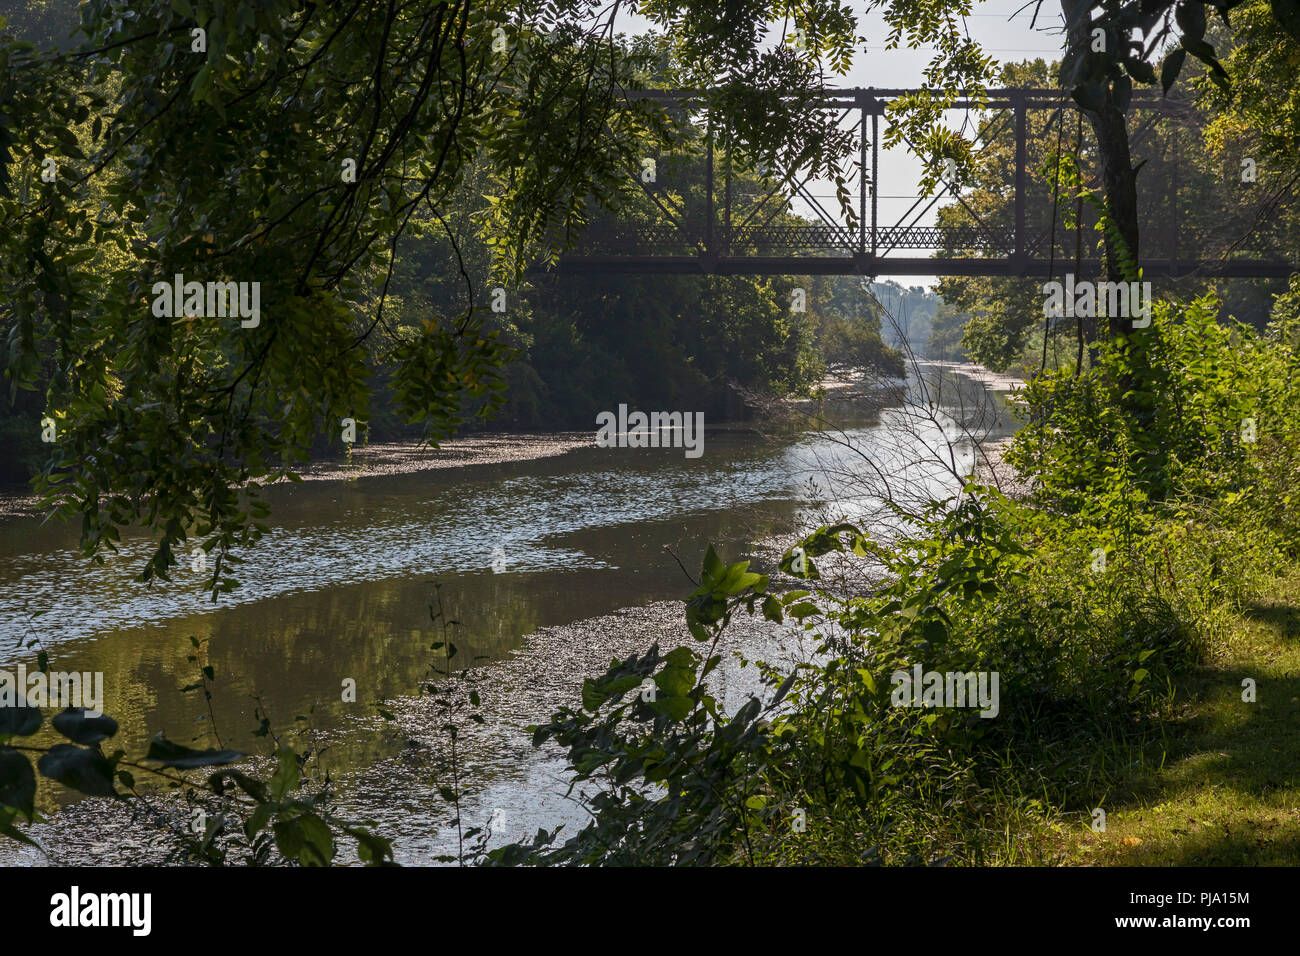 Sheffield, Illinois - An old railroad bridge crosses the Hennepin Canal. The canal was completed in 1907 to link the Illinois and Mississippi Rivers,  - Stock Image